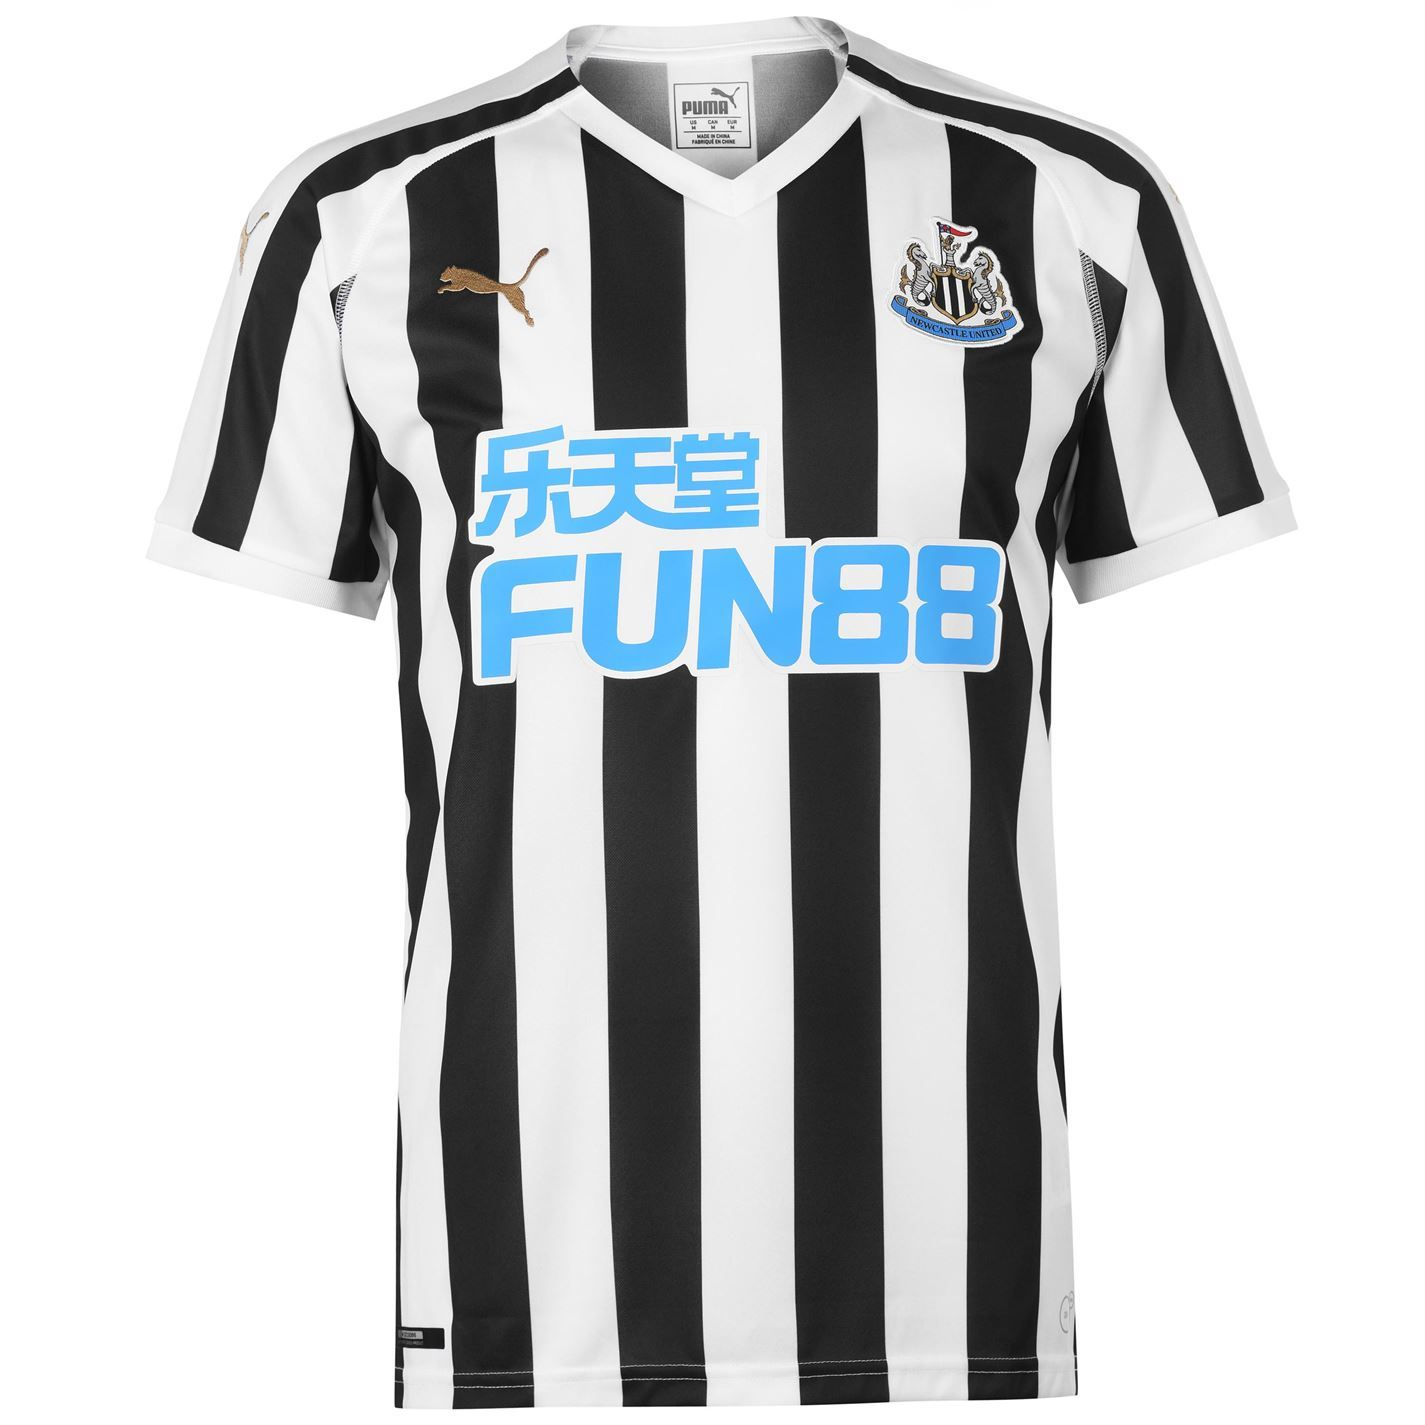 Details about Puma Newcastle United Home Jersey 2018-19 Mens Black White  Football Soccer Shirt df9730c3a32c8